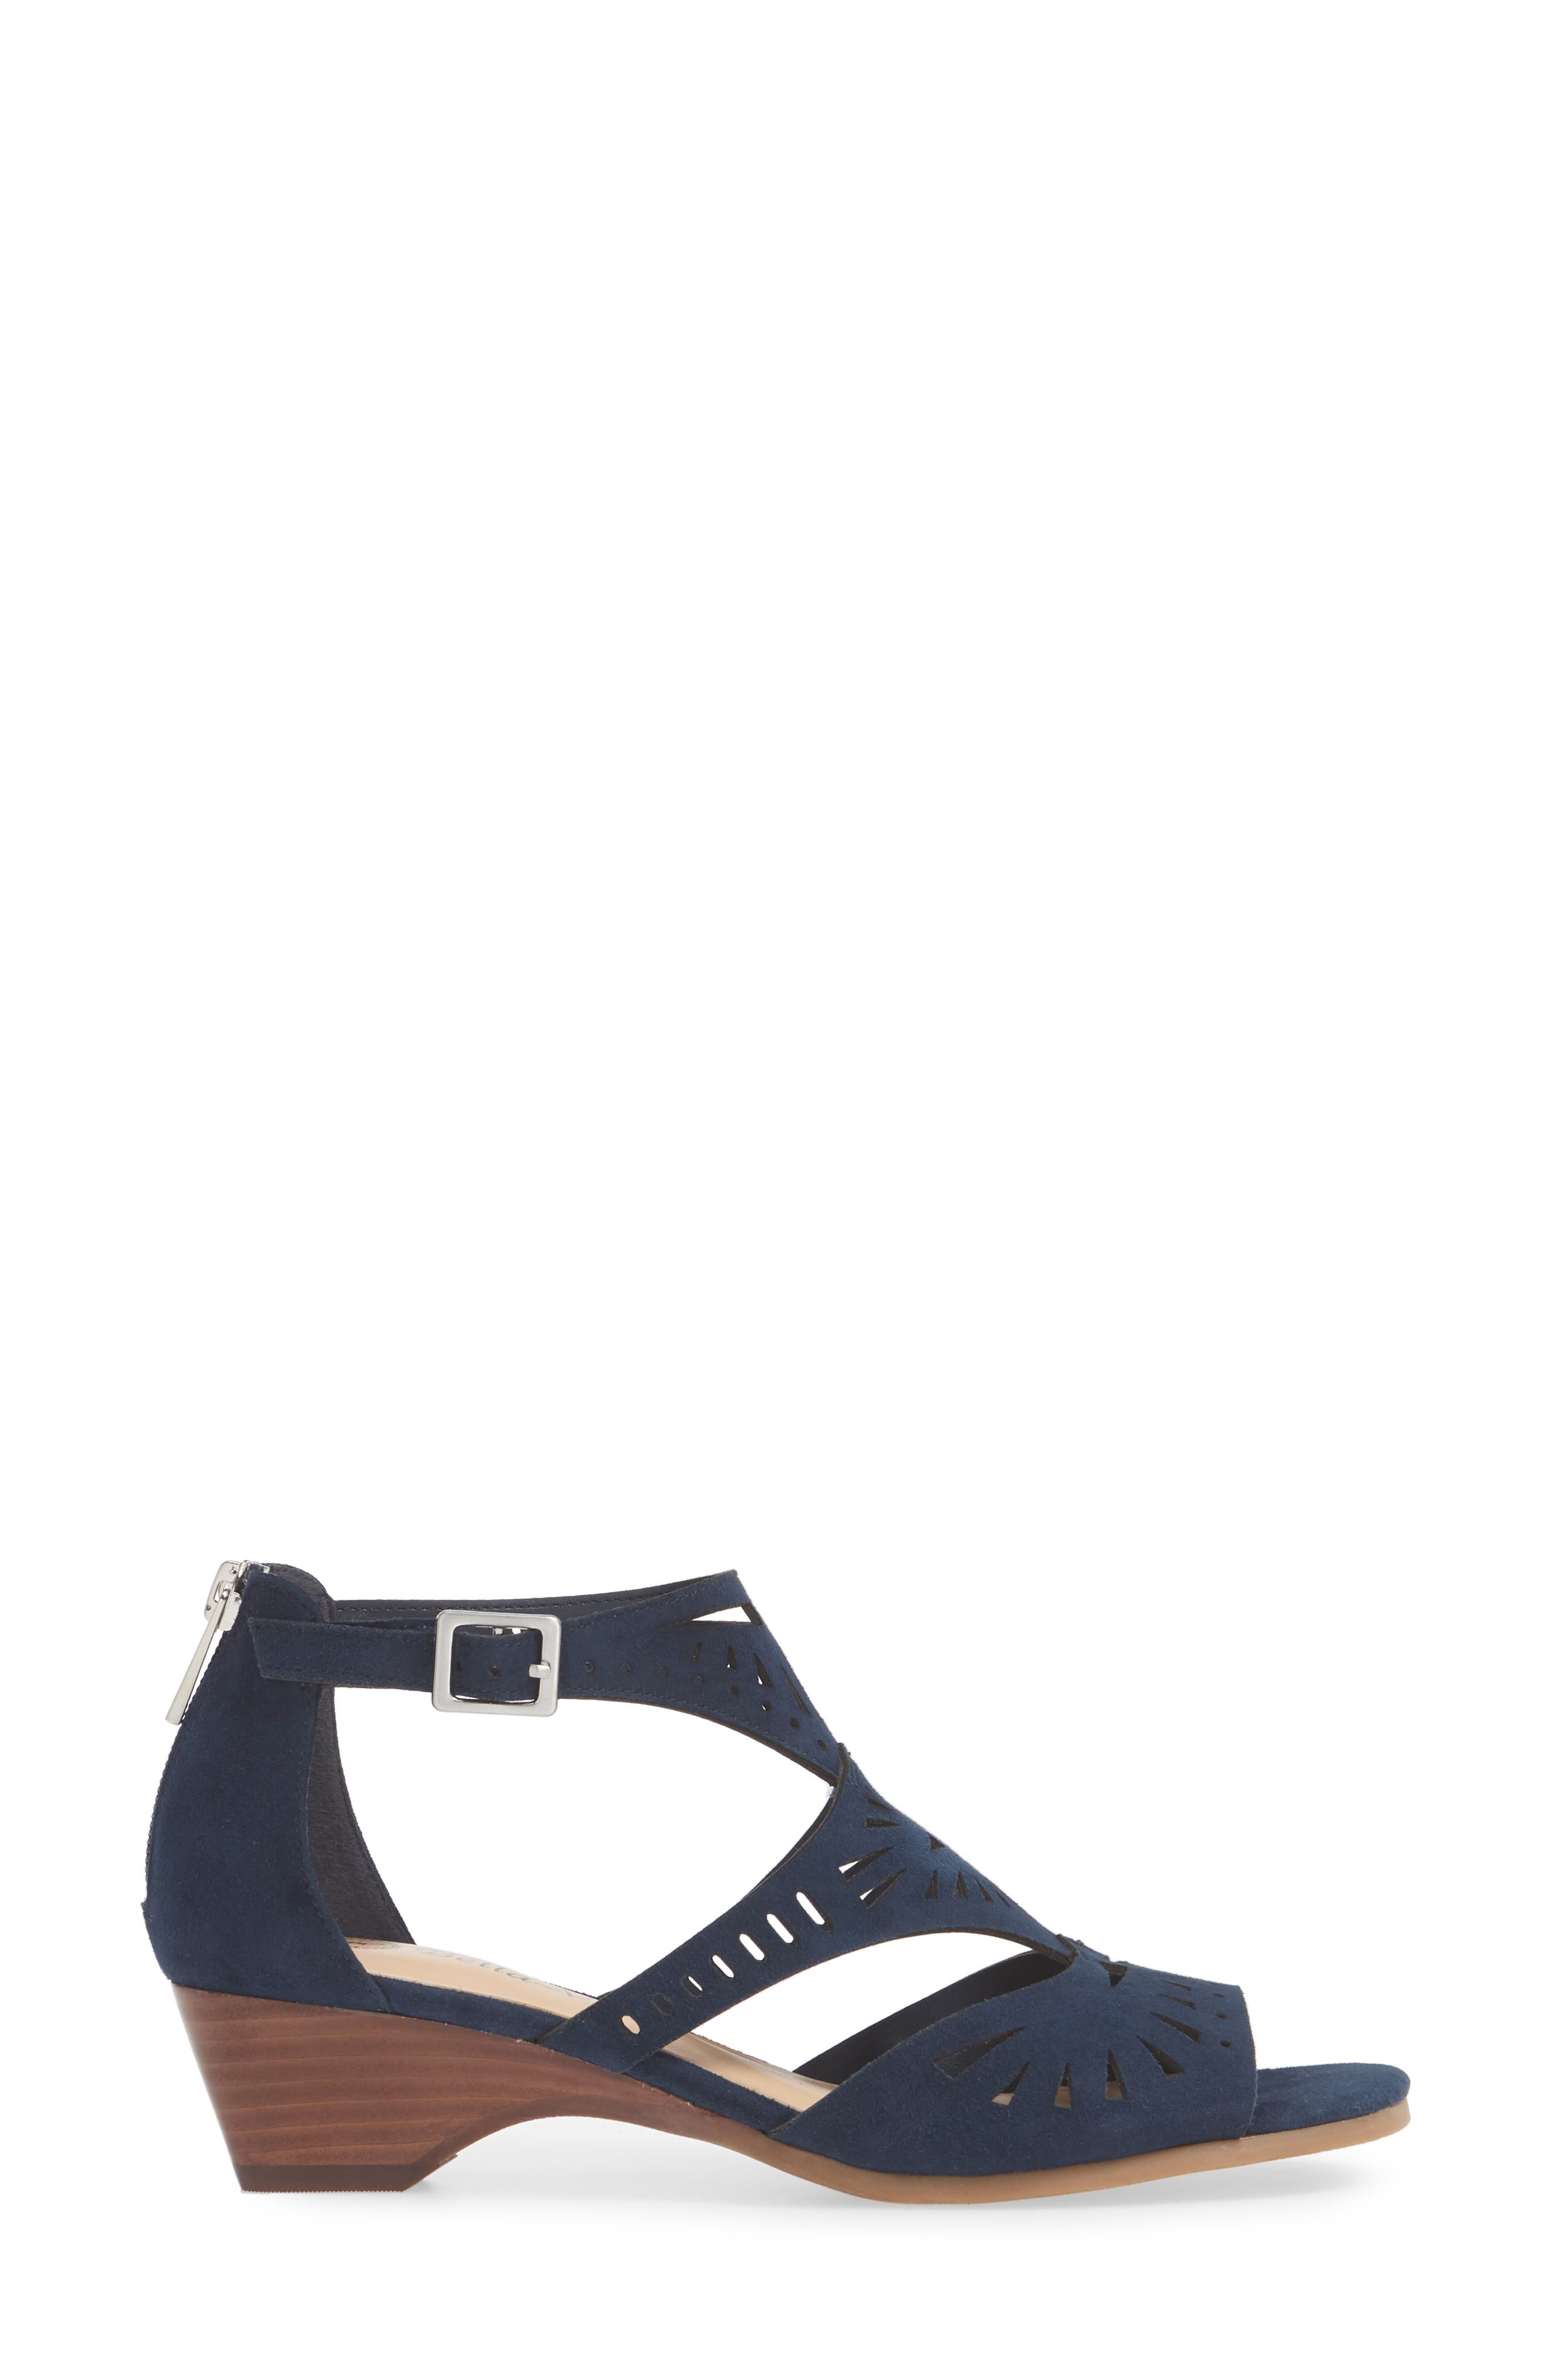 ,                             Penny Sandal,                             Alternate thumbnail 3, color,                             NAVY KID SUEDE LEATHER